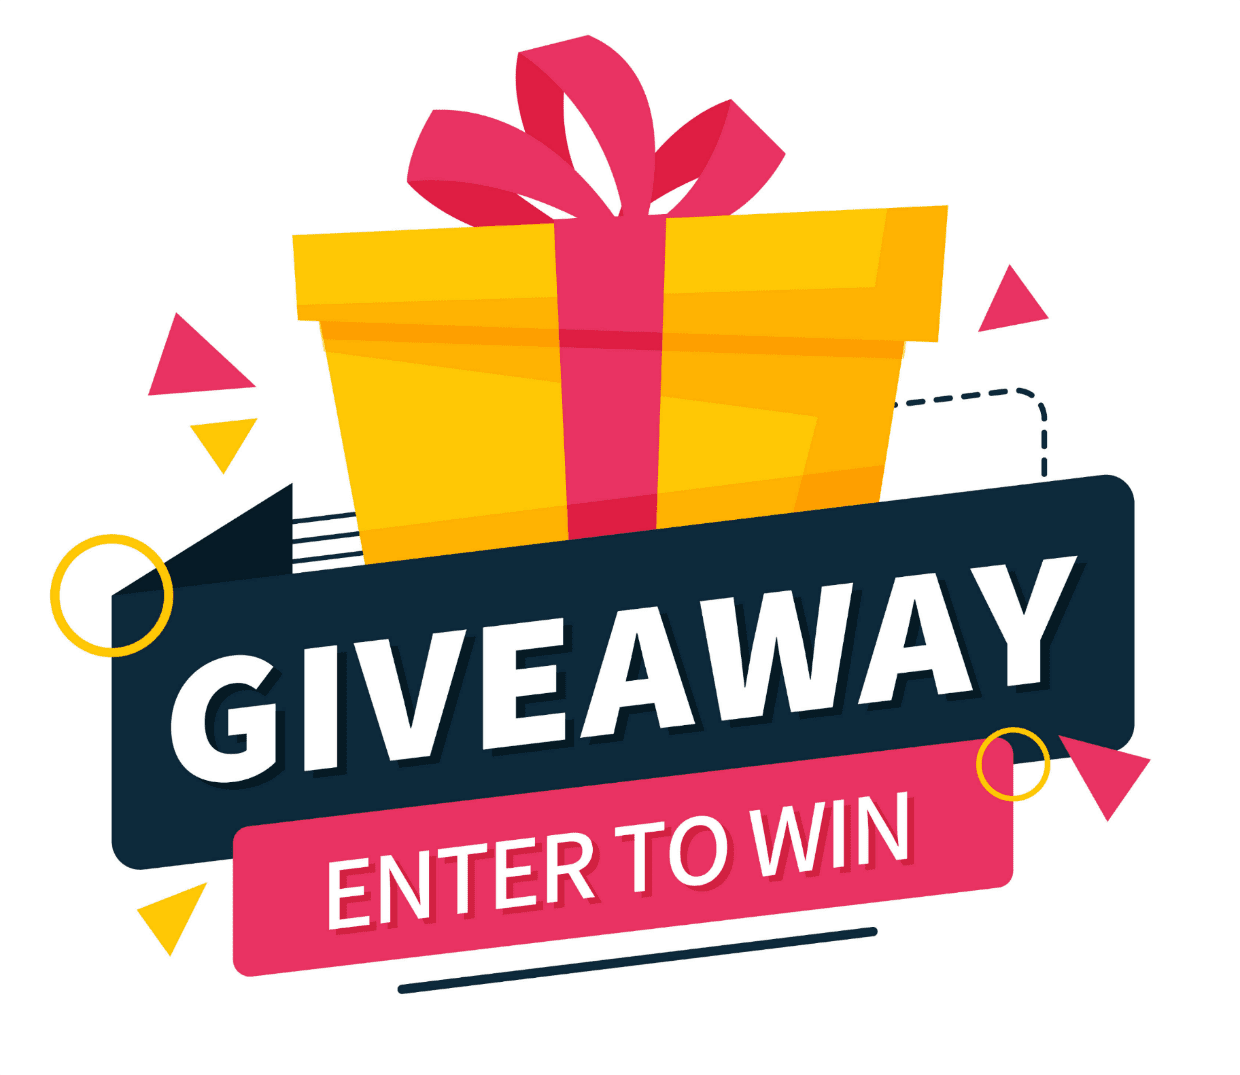 Enter to win - Insta Contests